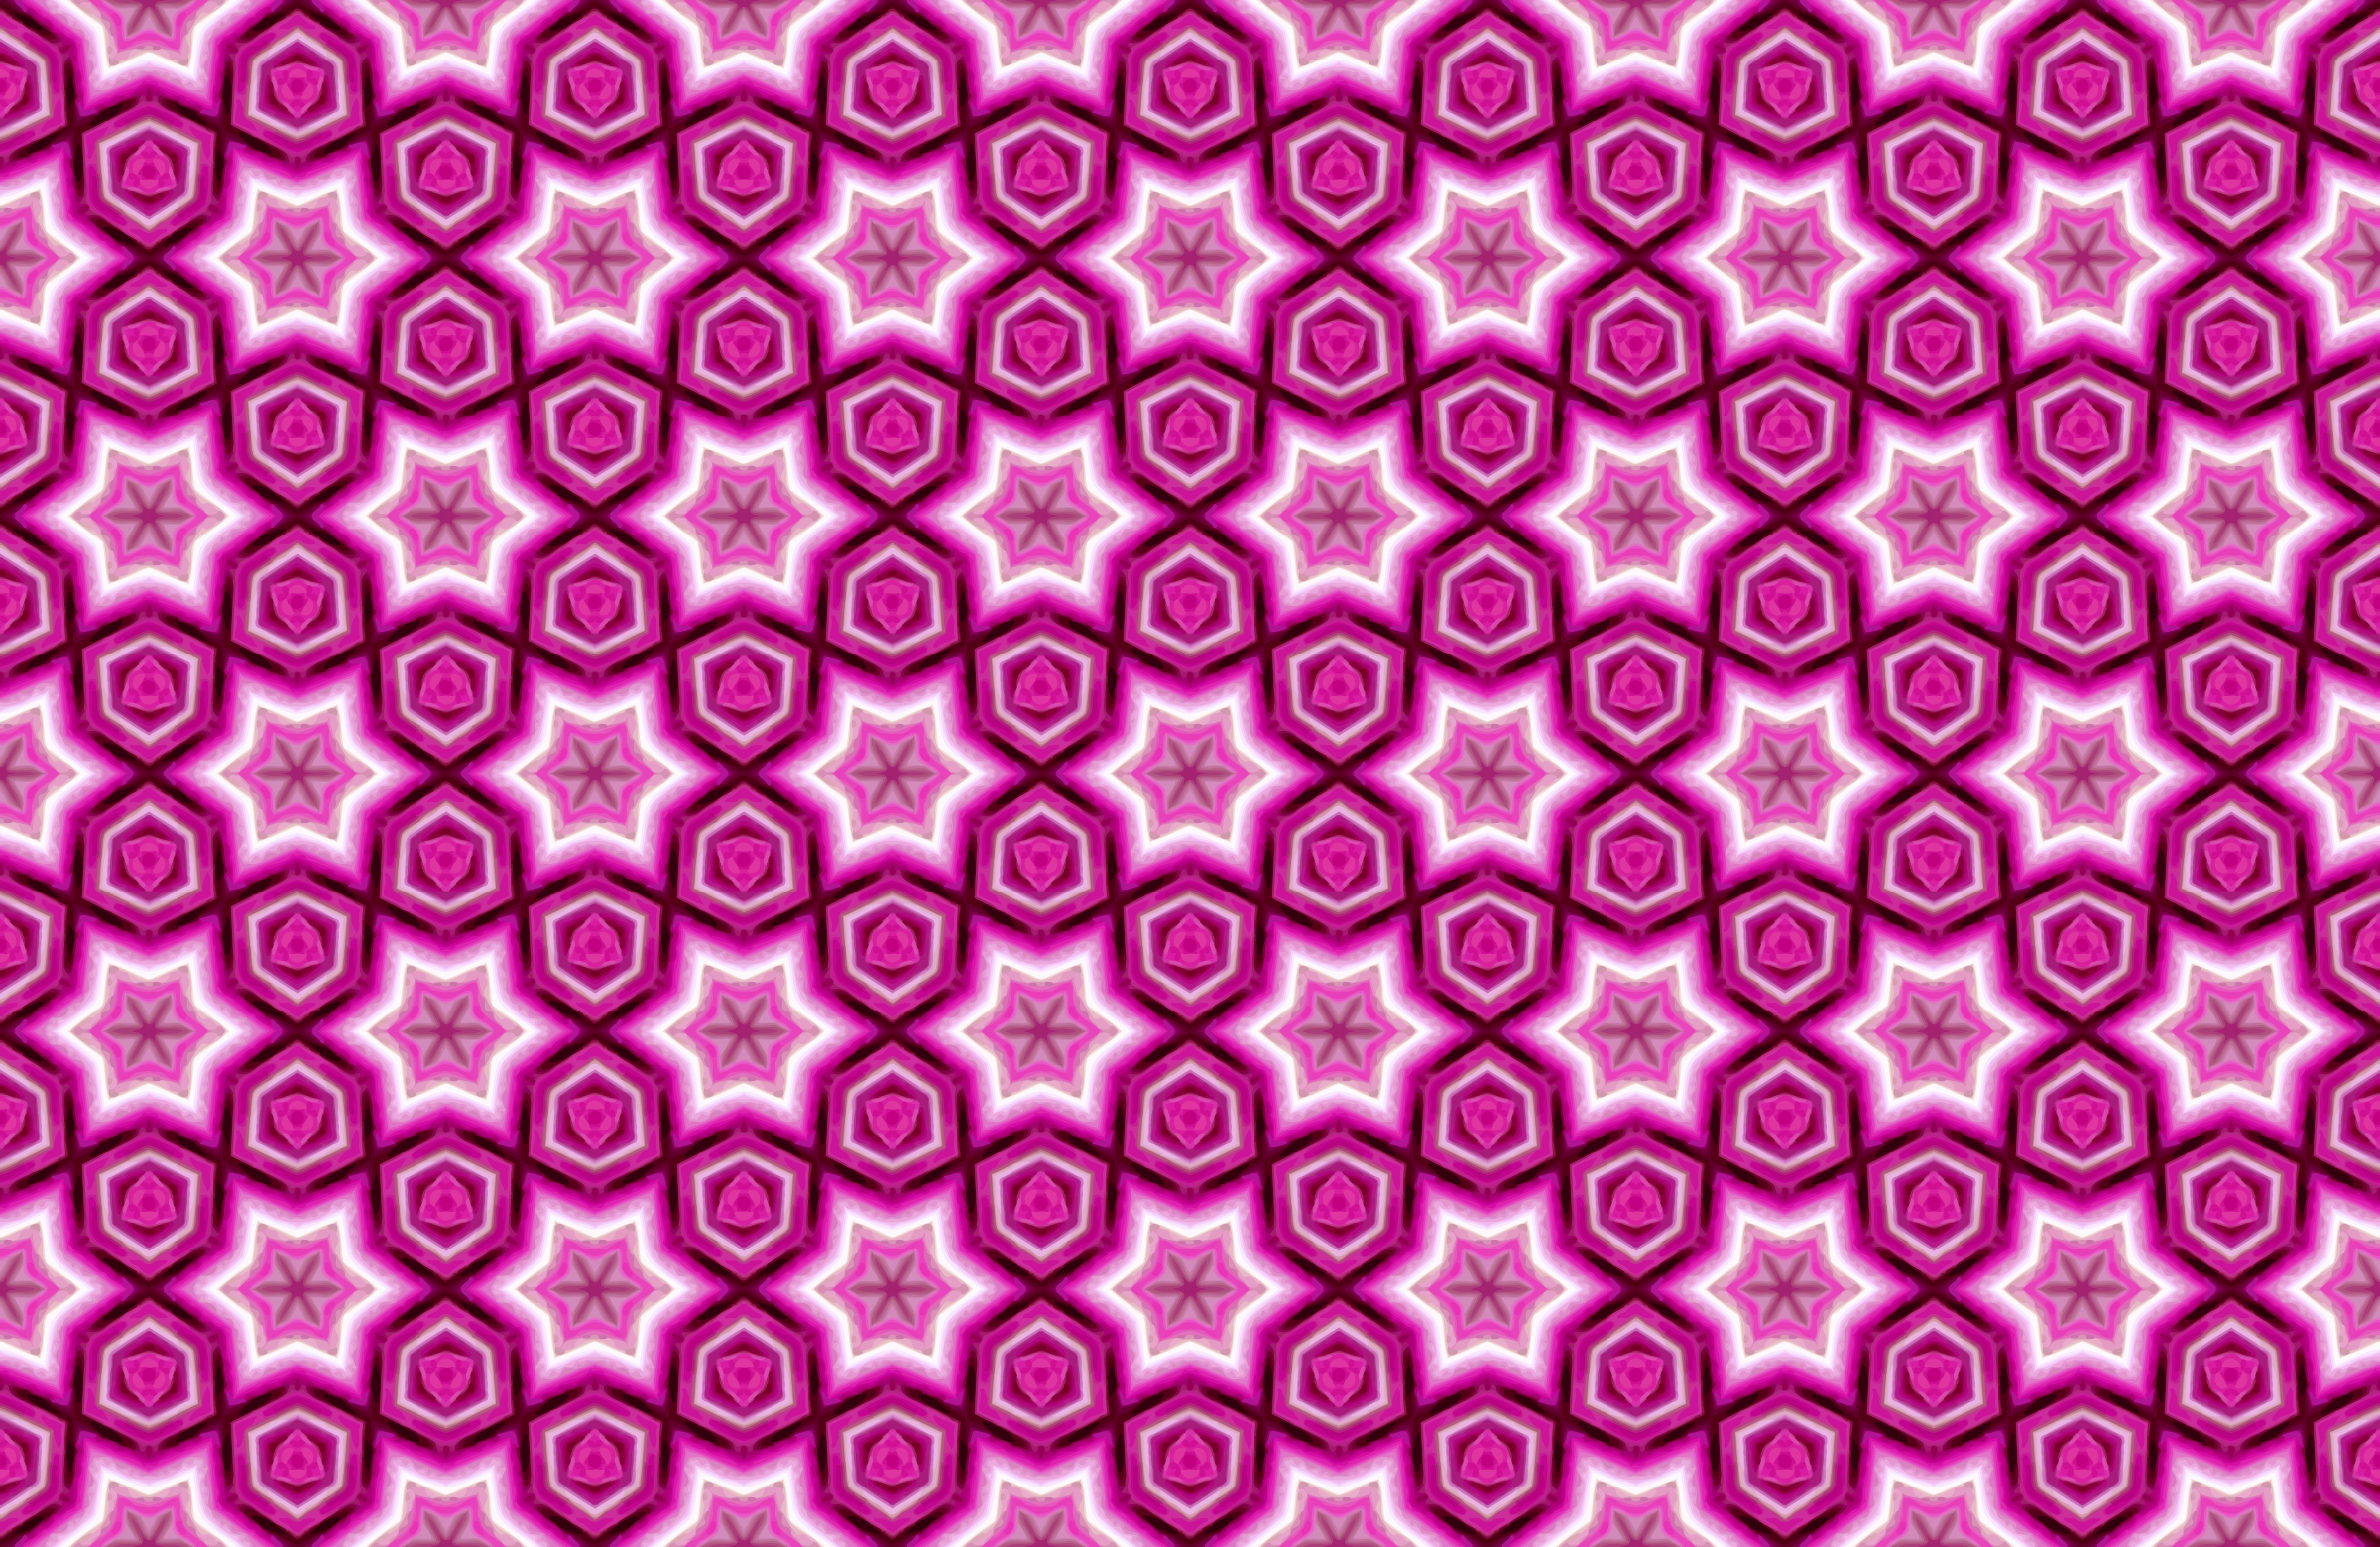 Background pattern 112 (alternative colour 2) by Firkin